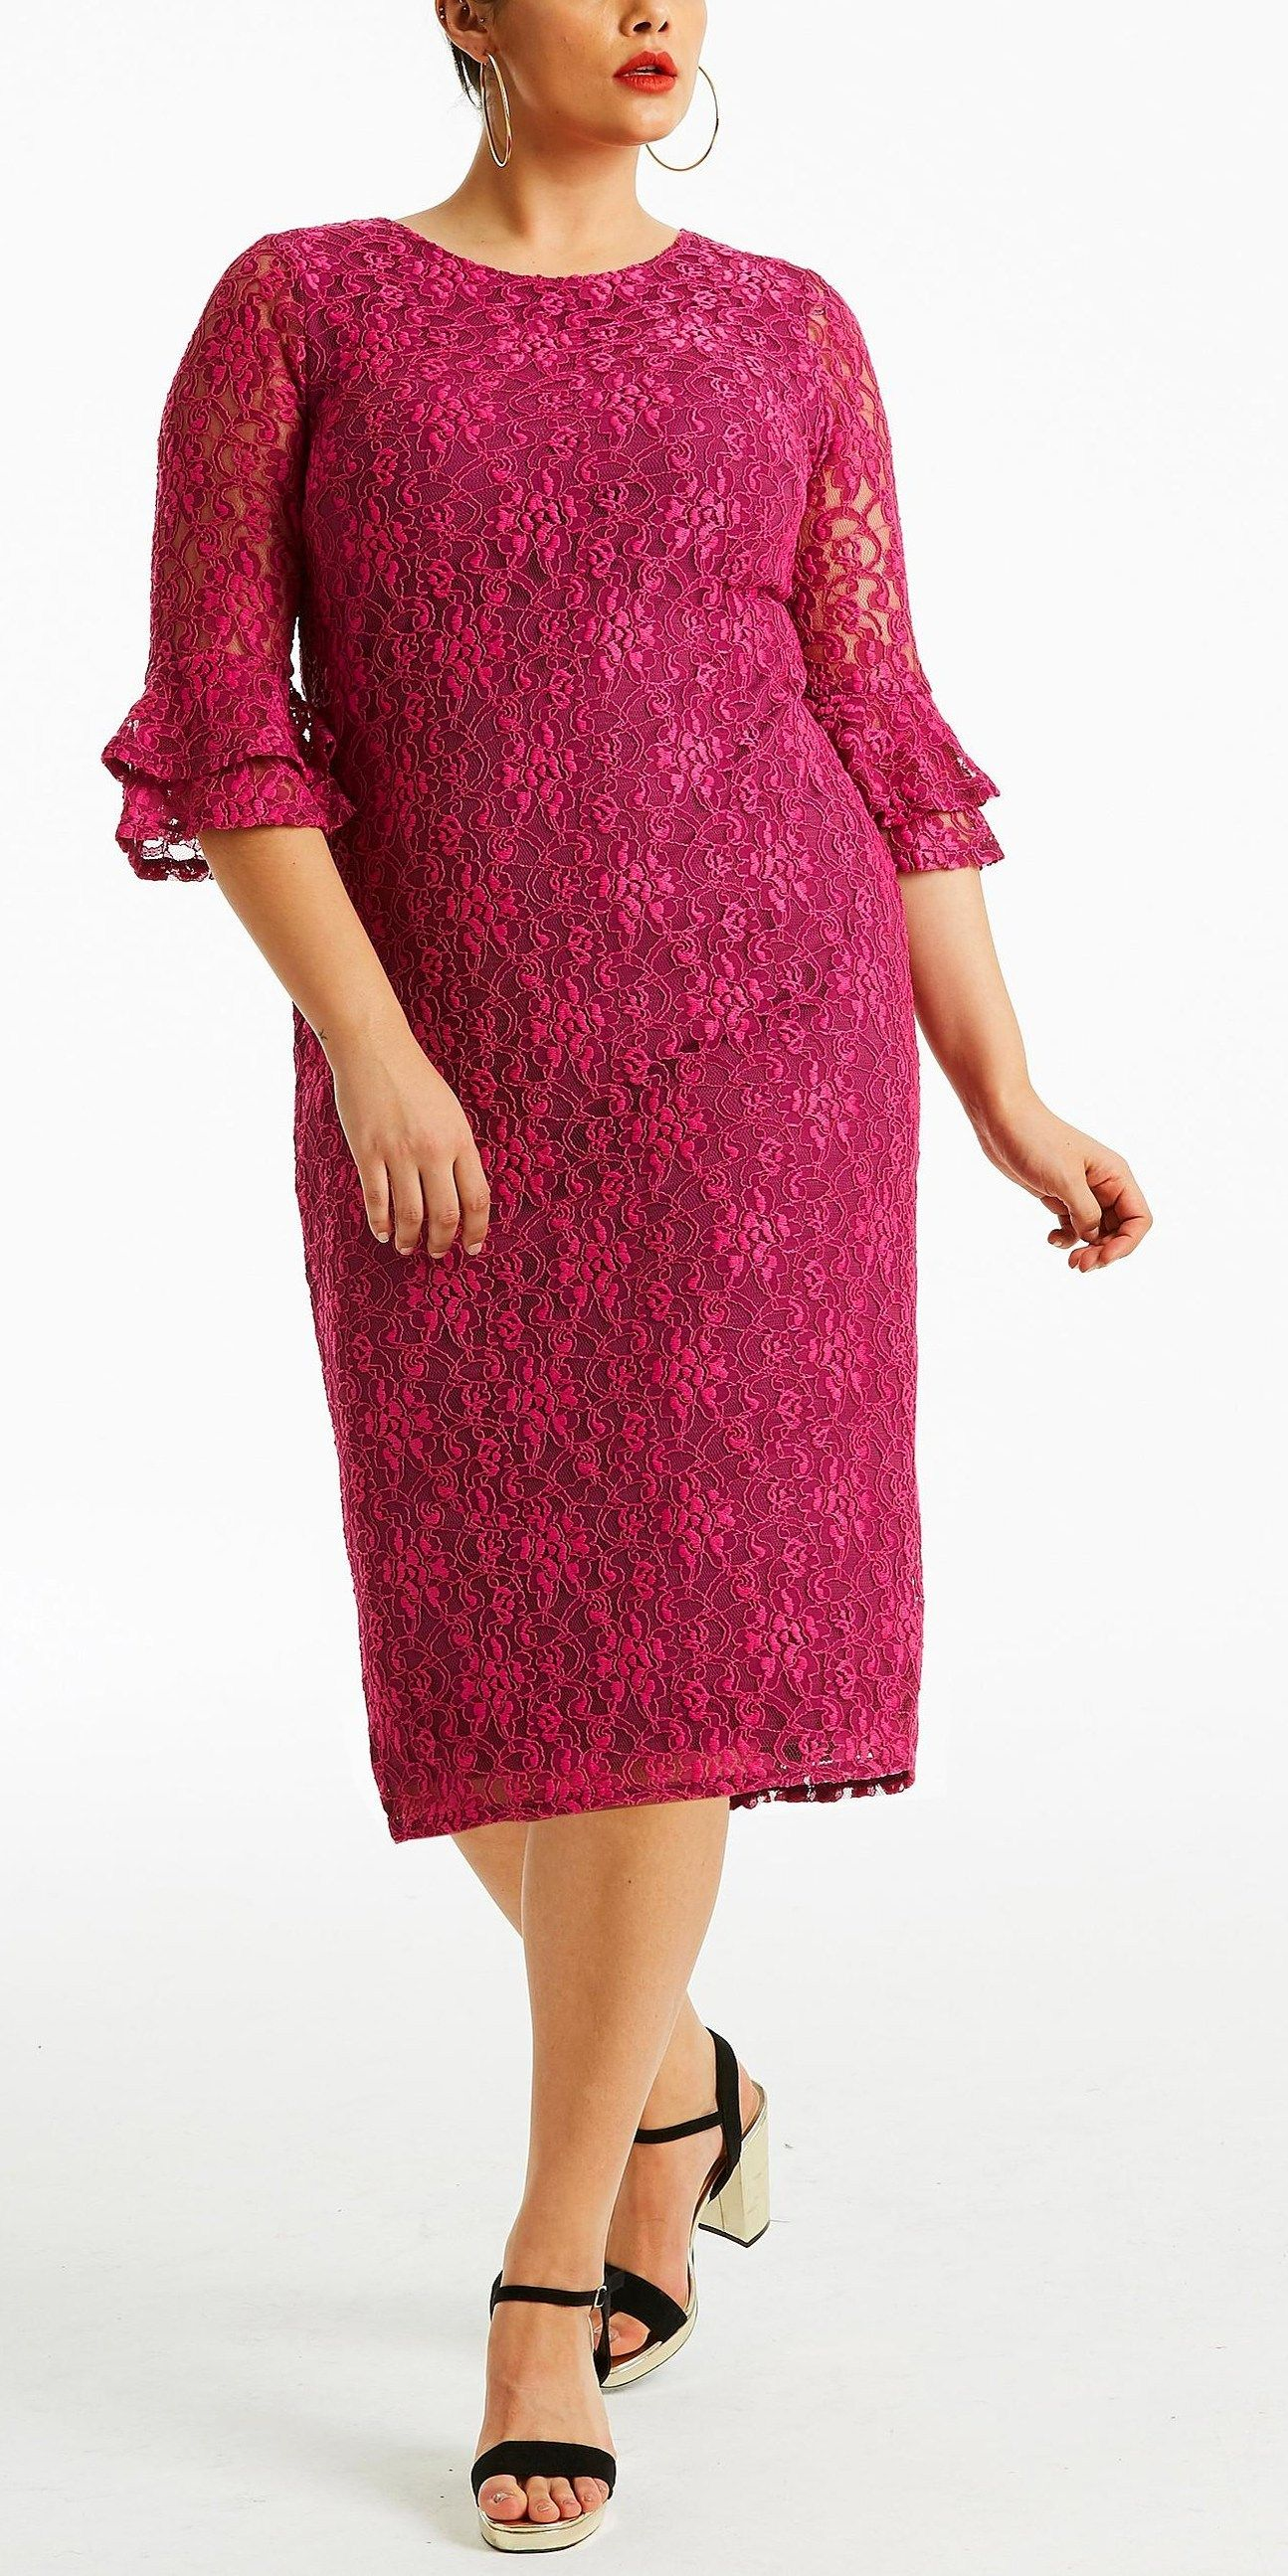 36 Plus Size Wedding Guest Dresses With Sleeves Alexa Webb Wedding Party Dress Guest Plus Size Party Dresses Plus Size Wedding Guest Dresses [ 2591 x 1295 Pixel ]